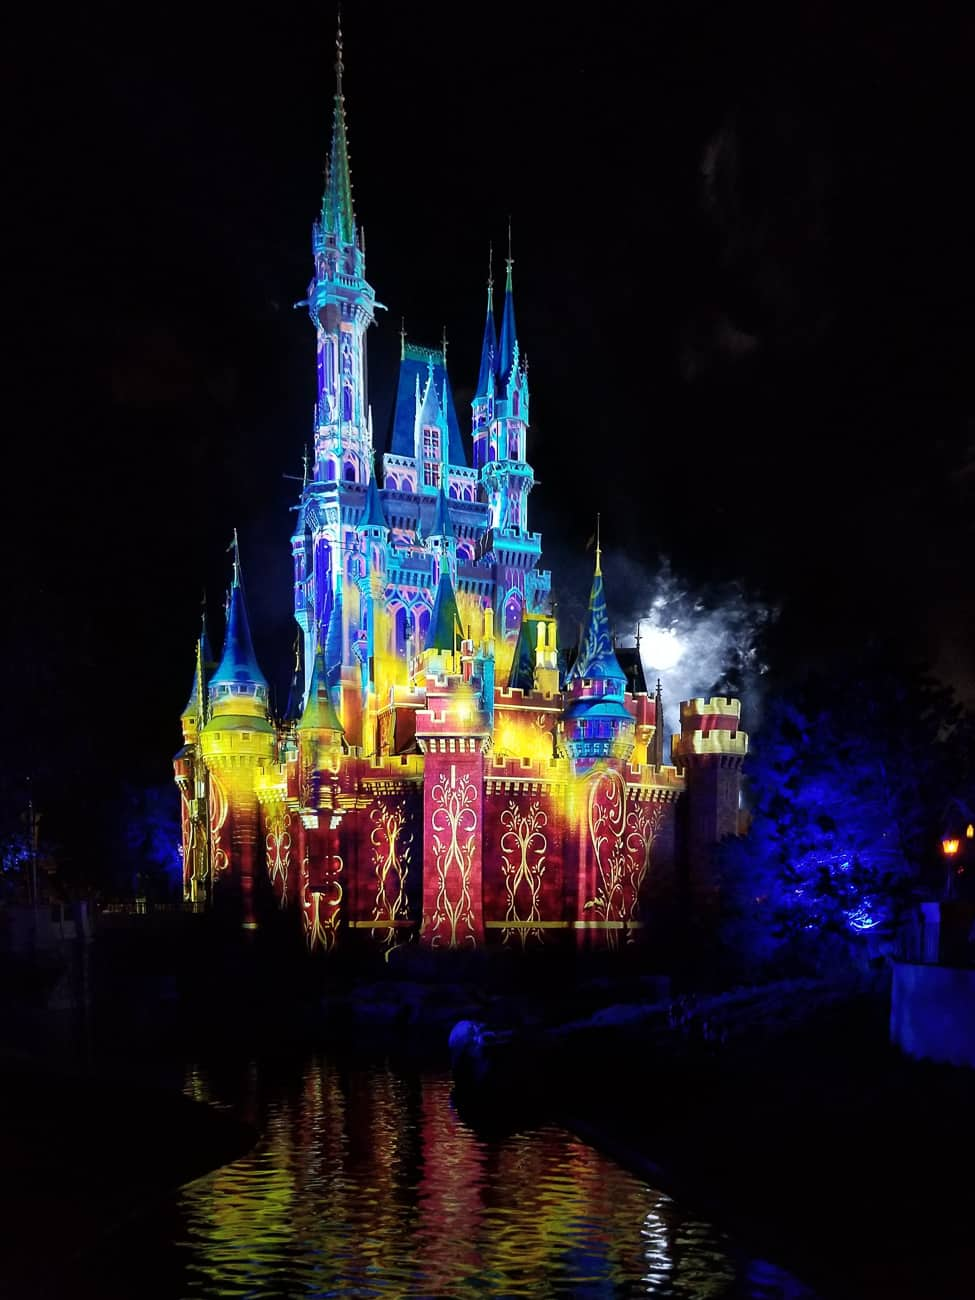 how to take better pictures at Disney World at night